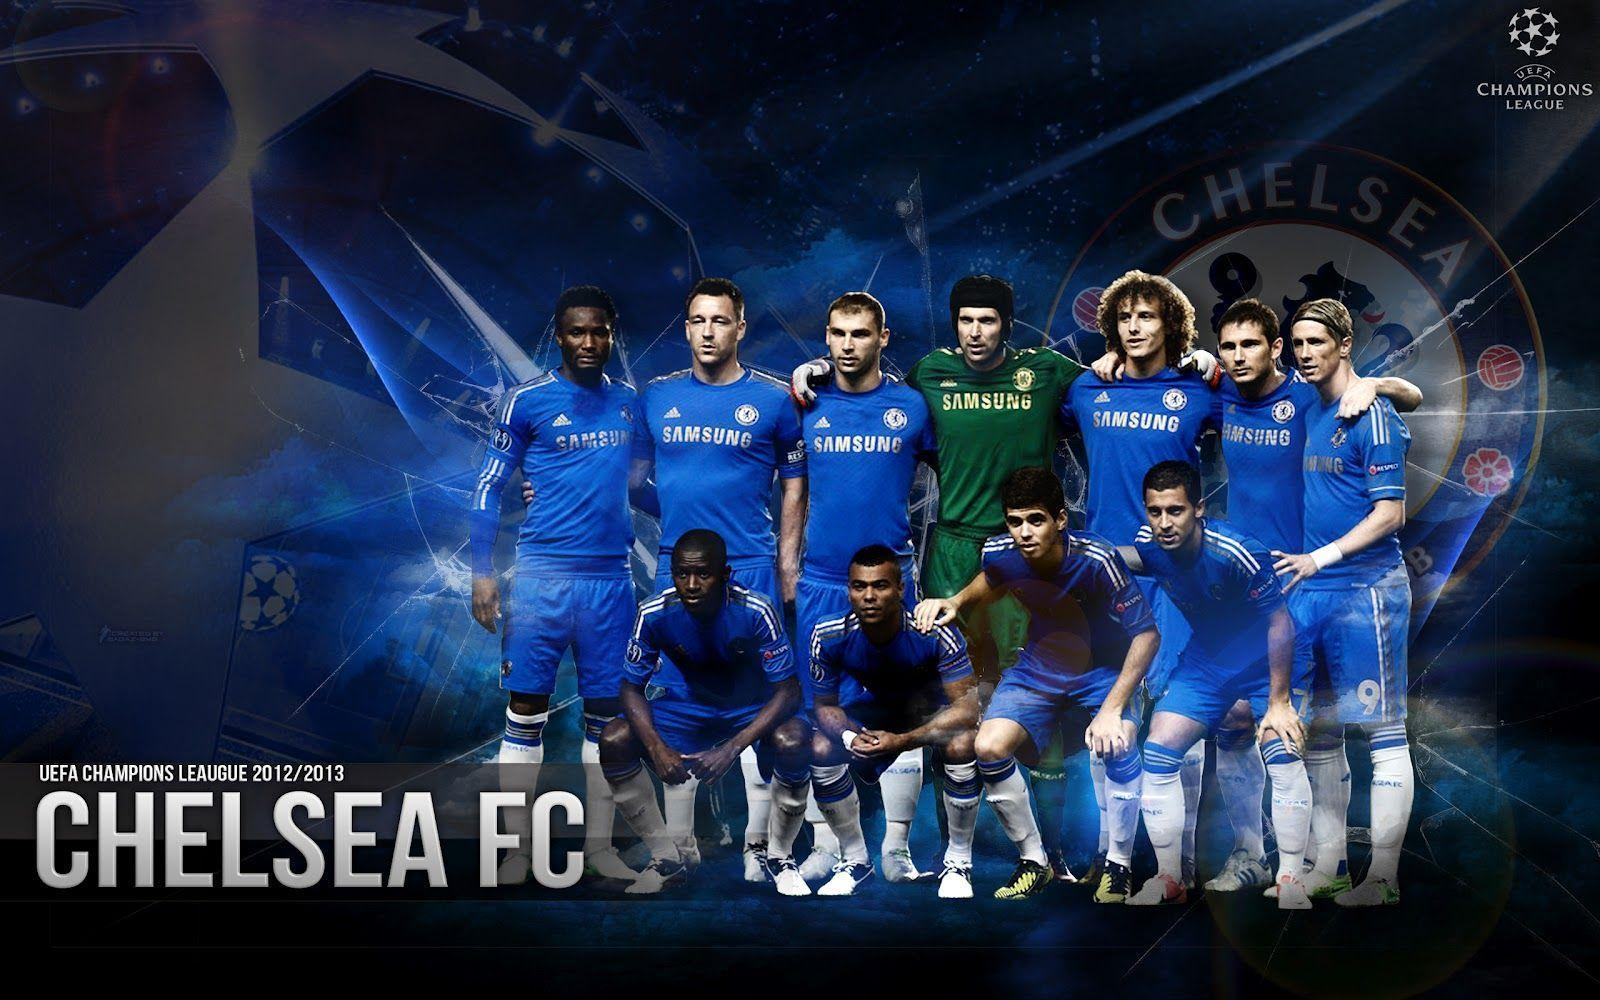 Chelsea Squad 2017 Wallpapers - Wallpaper Cave